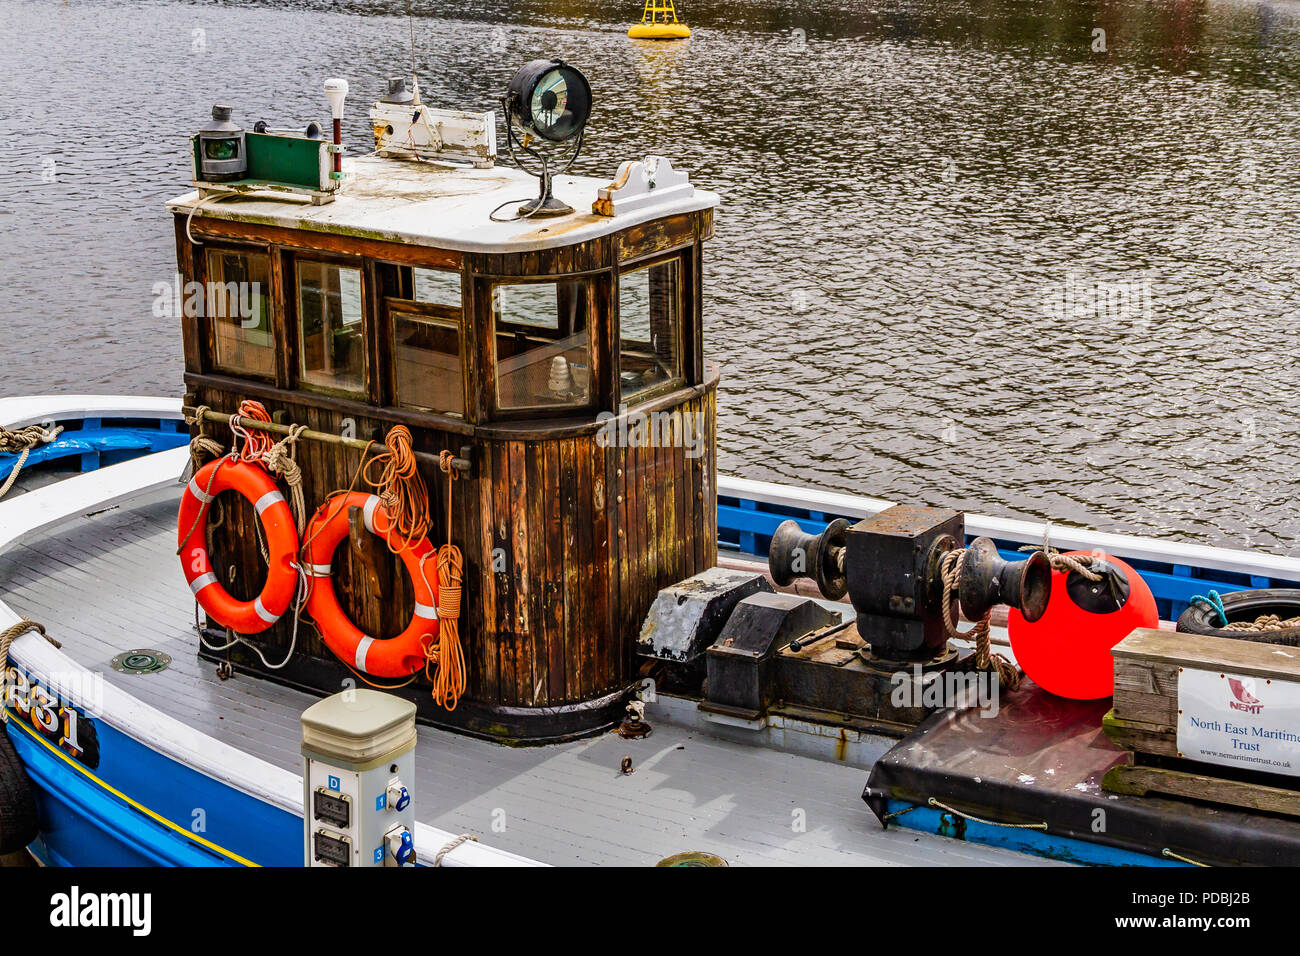 The wooden fishing vessel Rachel Douglas, built in 1947 to operate from Seahouses, now owned by the North East Maritime Trust and moored on the Tyne. Stock Photo